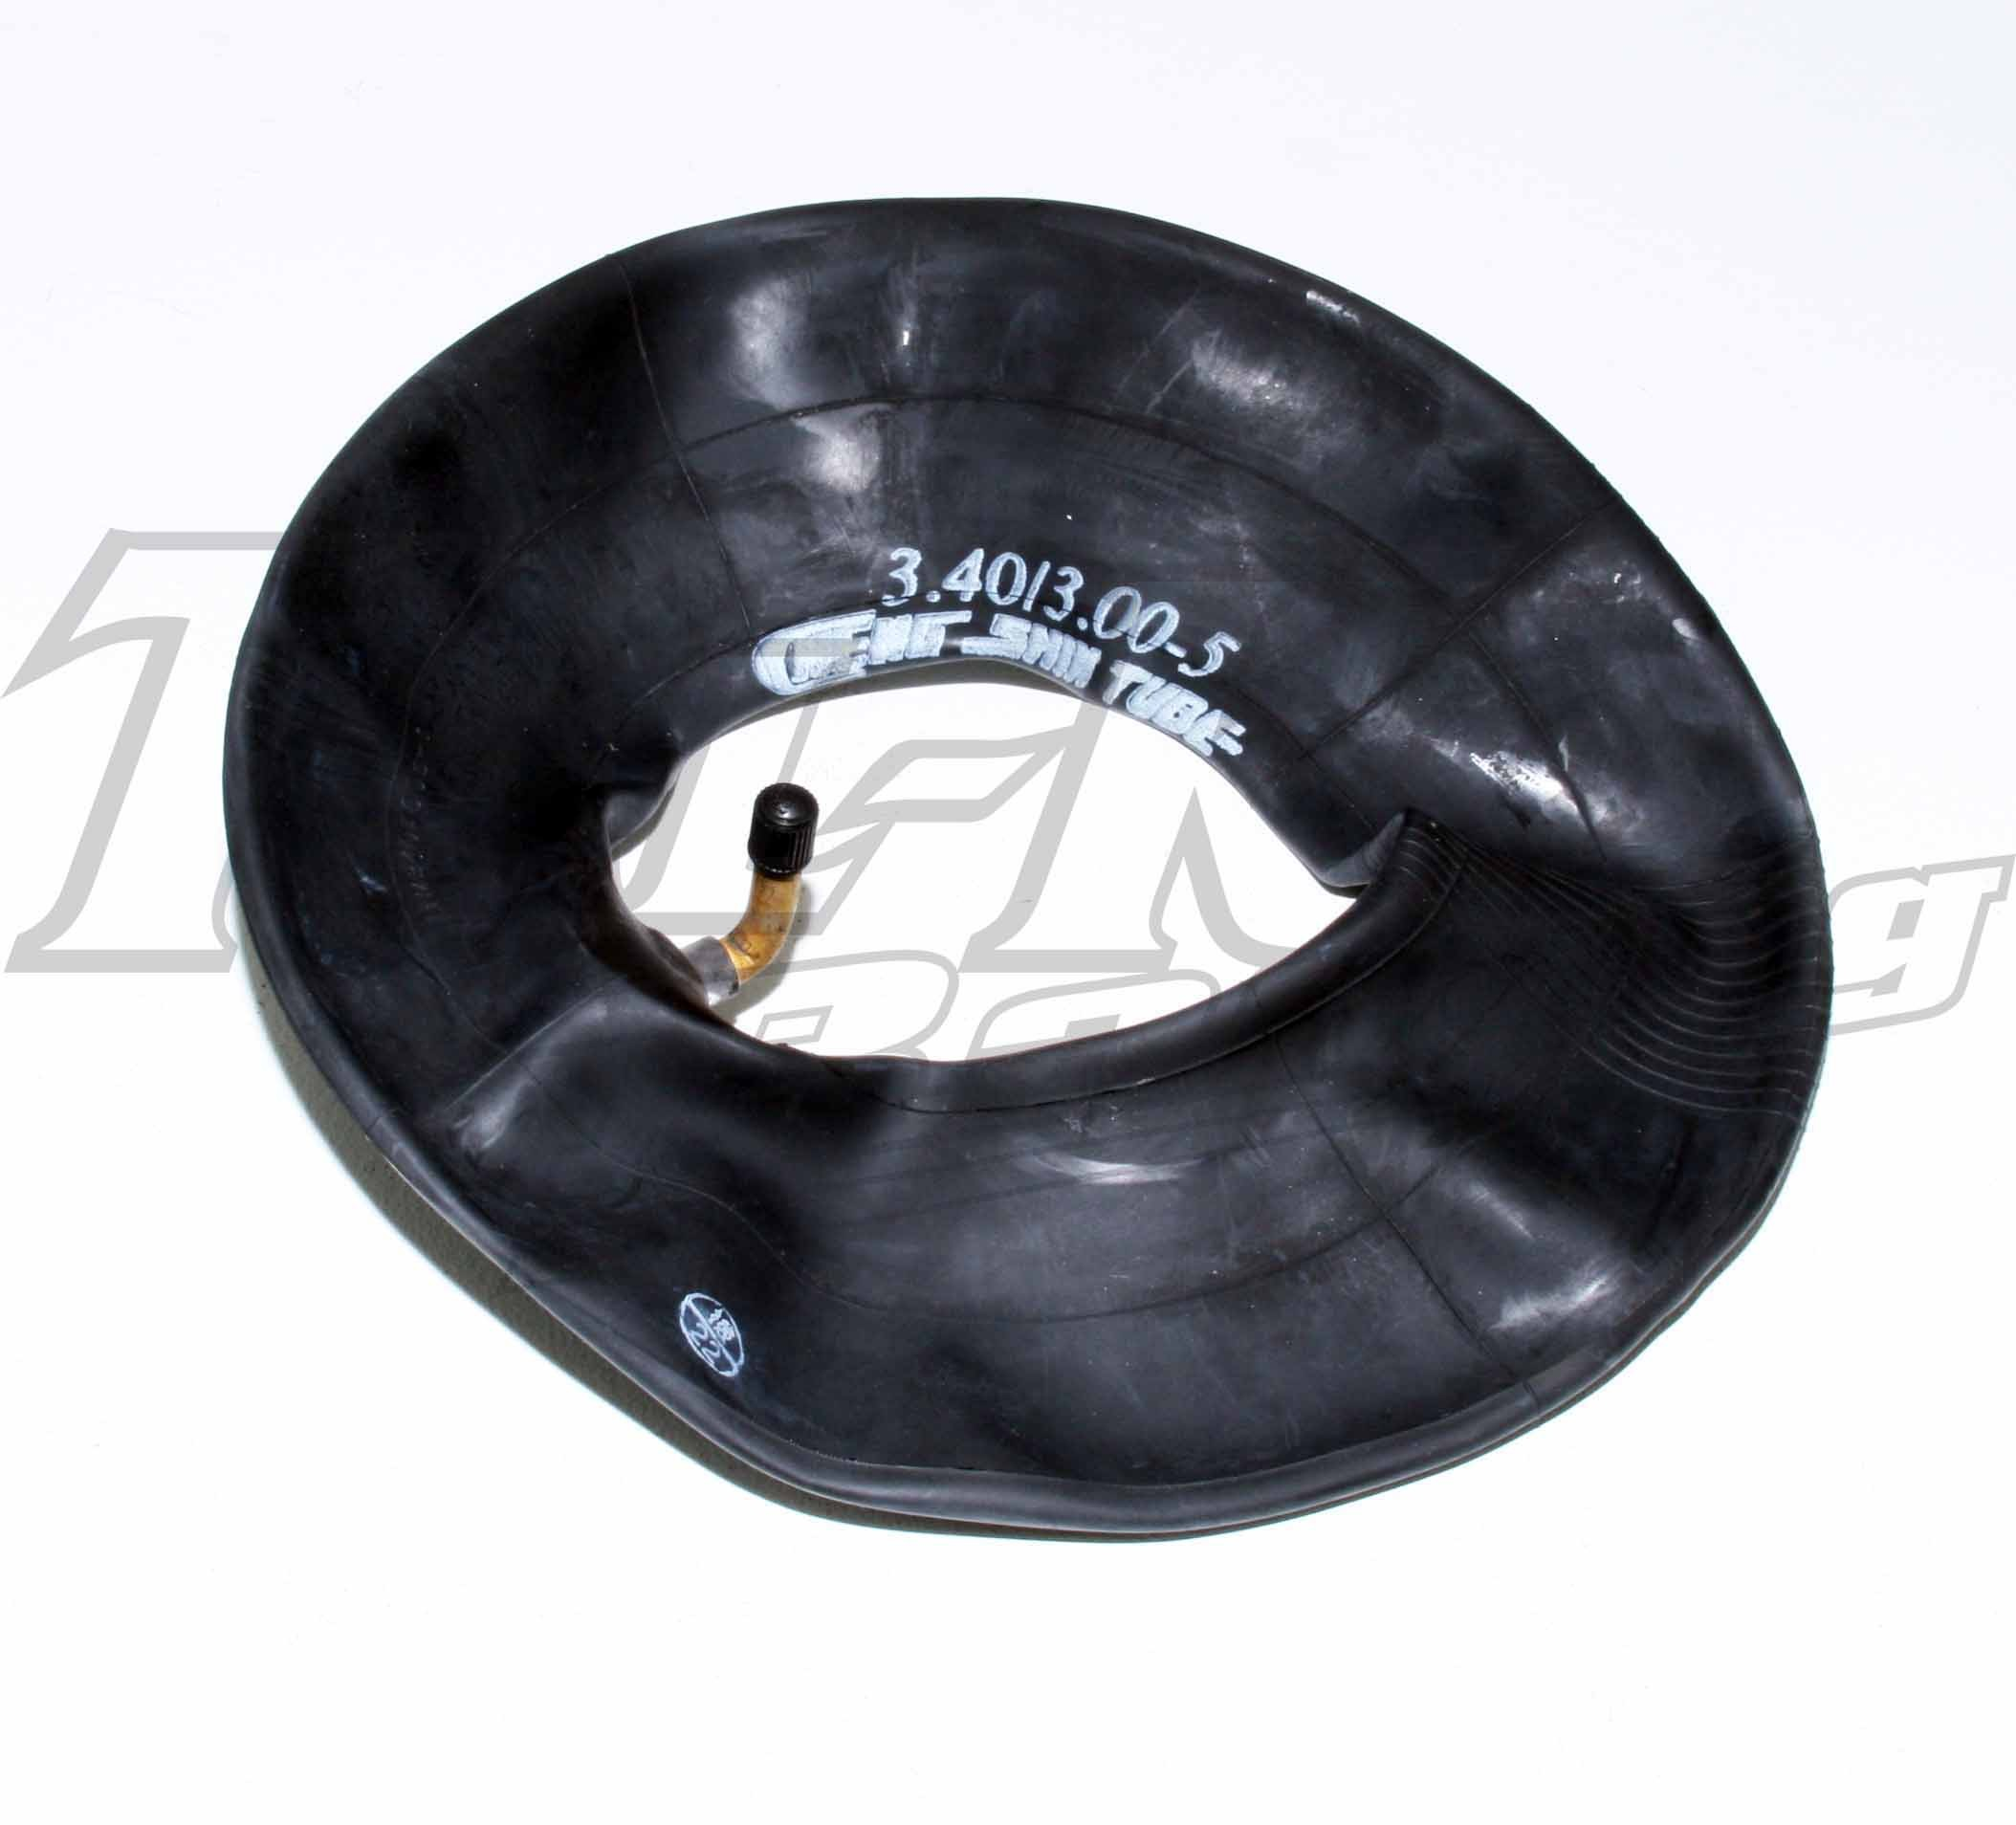 FRONT VINTAGE MAXXIS TYRE INNER TUBE